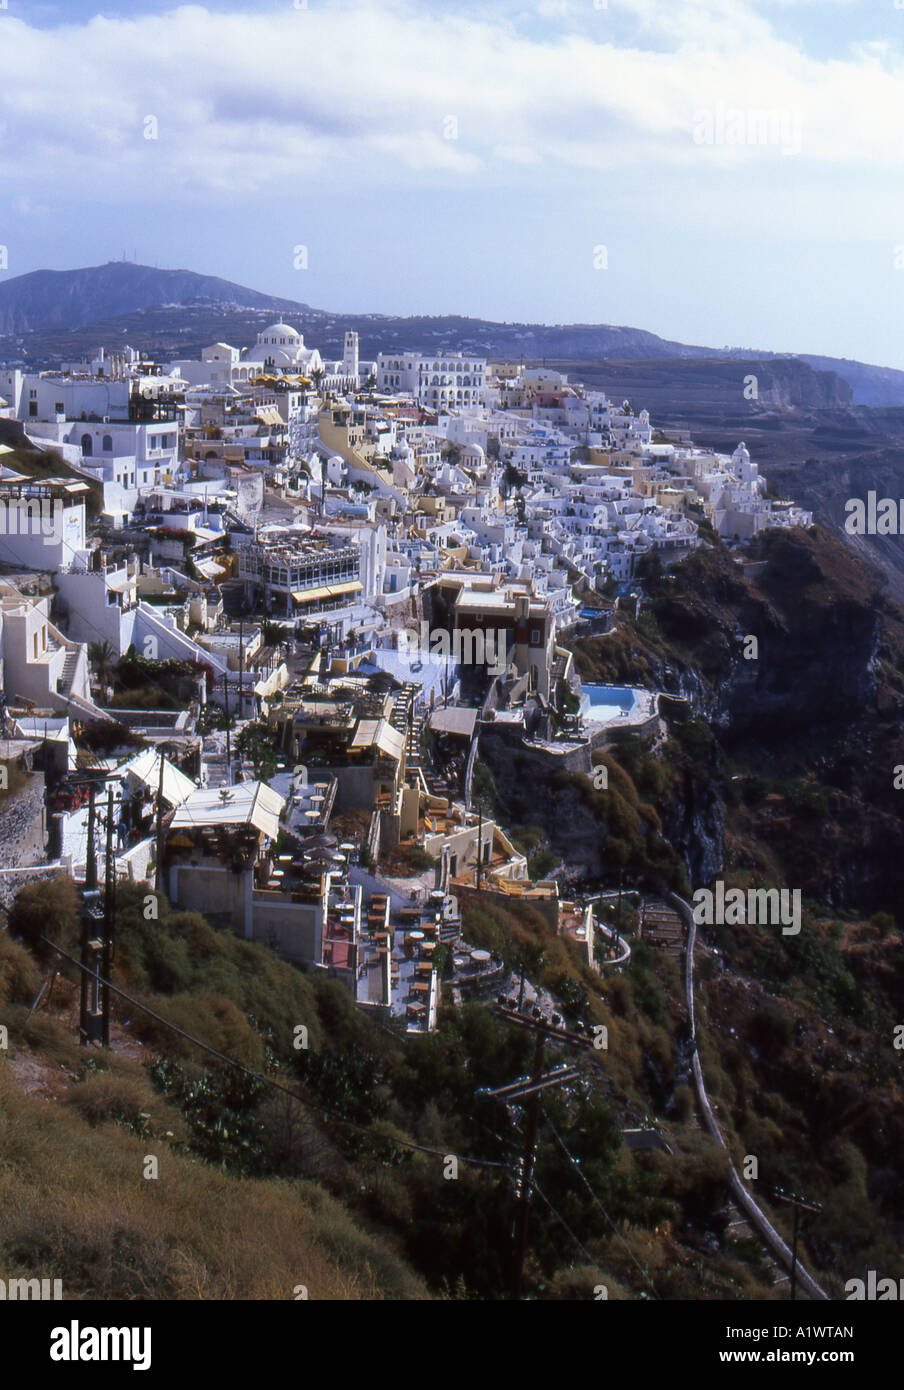 Thira the main town of Santorini, from above number 1959 - Stock Image